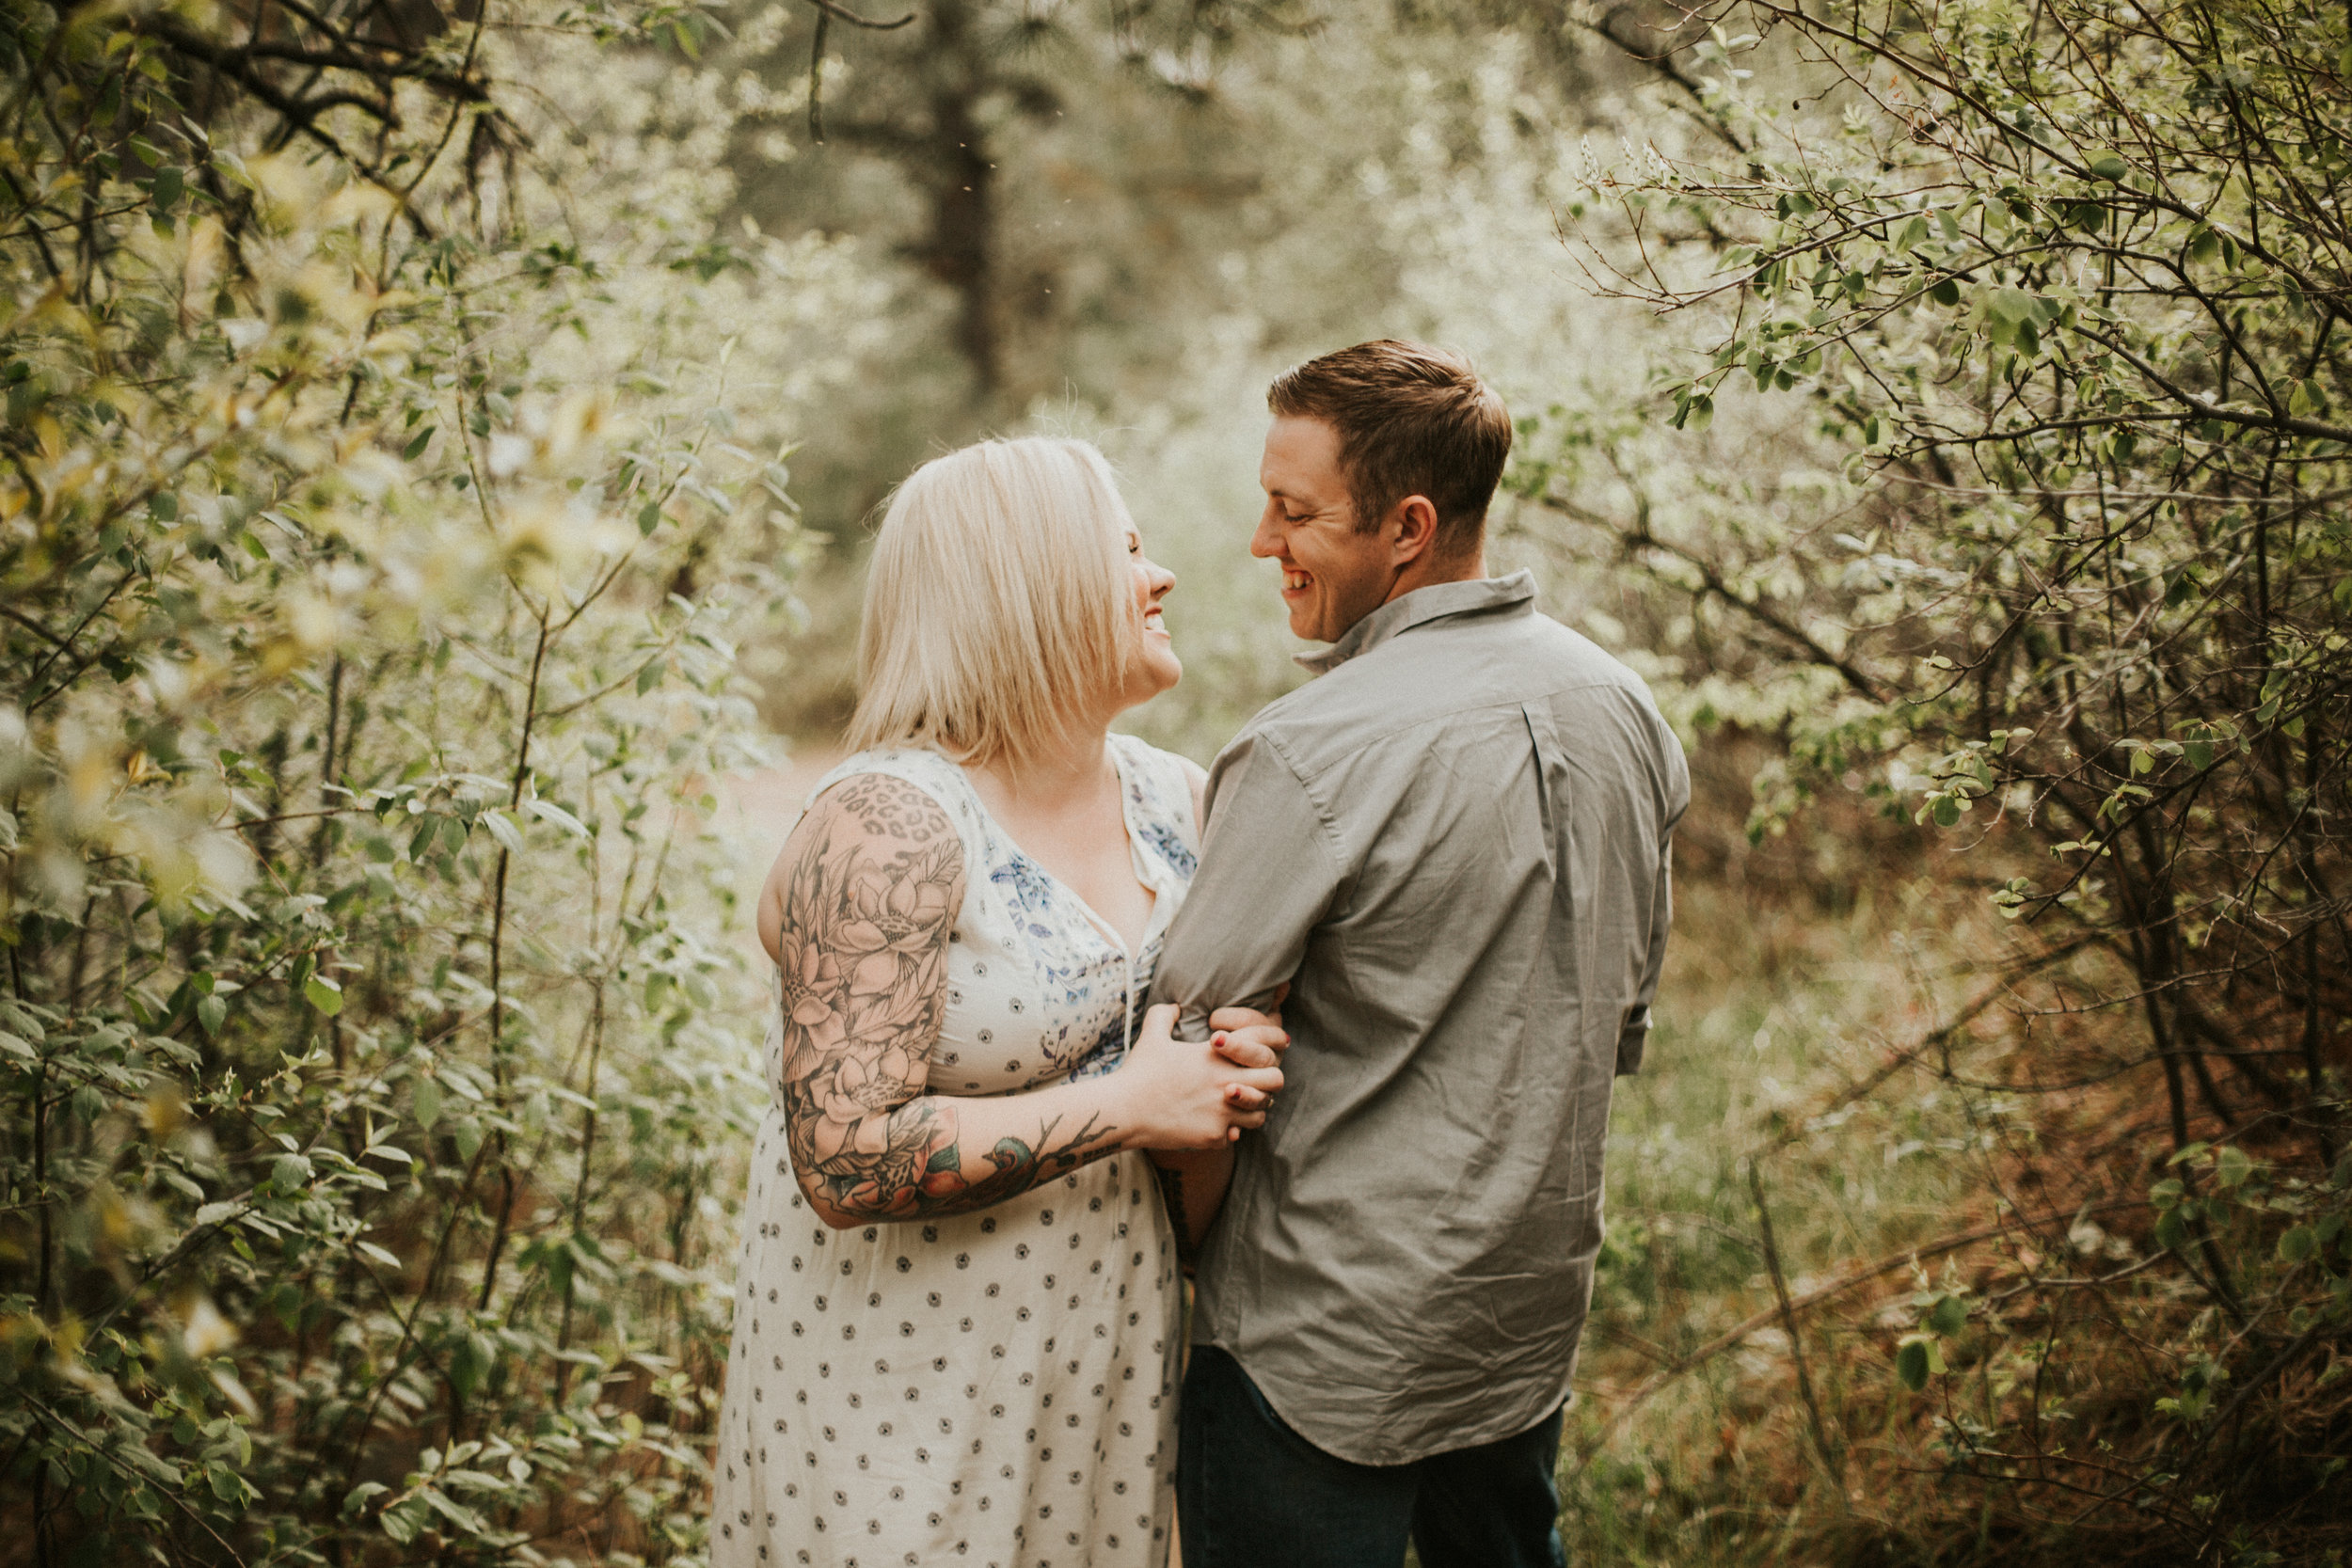 "- "" MY FIANCÉ AND I WERE BEYOND NERVOUS FOR OUR ENGAGEMENT PHOTOS. TANDY MADE US FEEL LIKE WE'VE BEEN MODELING OUR ENTIRE LIVES! SHE MADE US FEEL SO COMFORTABLE AND CONFIDENT IN OURSELVES. SHE EVEN WENT OUT OF HER WAY TO CAPTURE NOT ONLY FAMILY PHOTOS BUT PORTRAITS OF MY SONS TOO. I REALLY CAN'T EXPRESS HOW GRATEFUL I AM FOR THE PHOTOS SHE CAPTURED AND THE MEMORIES I'LL HAVE FOR THE REST OF MY LIFE."